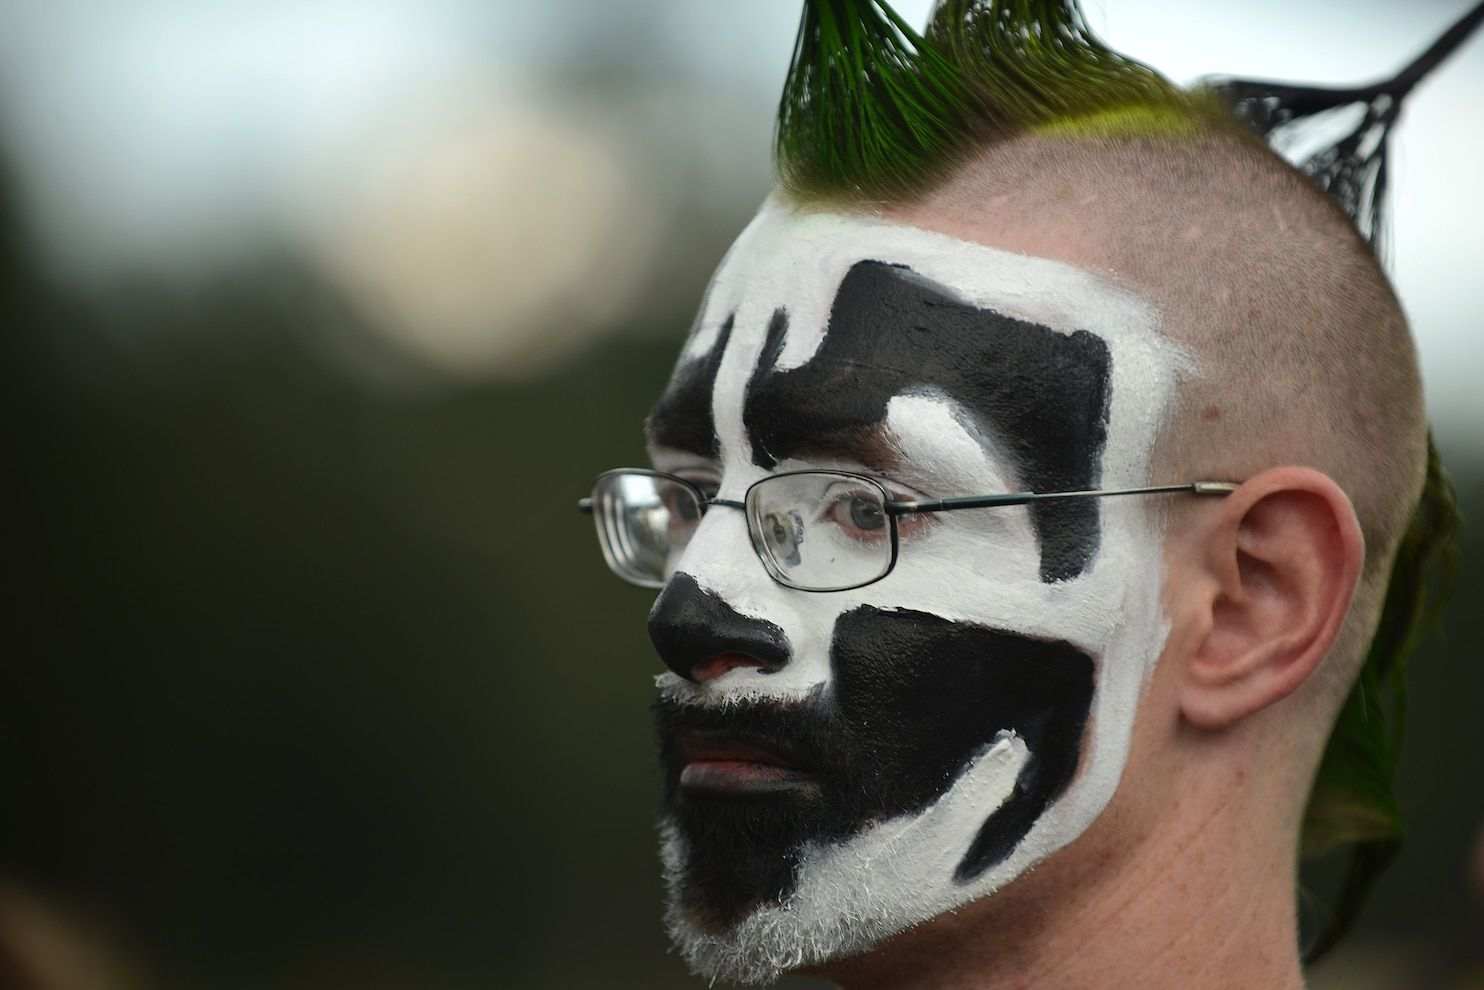 Juggalos march on Washington to protest gang label - Washington Post